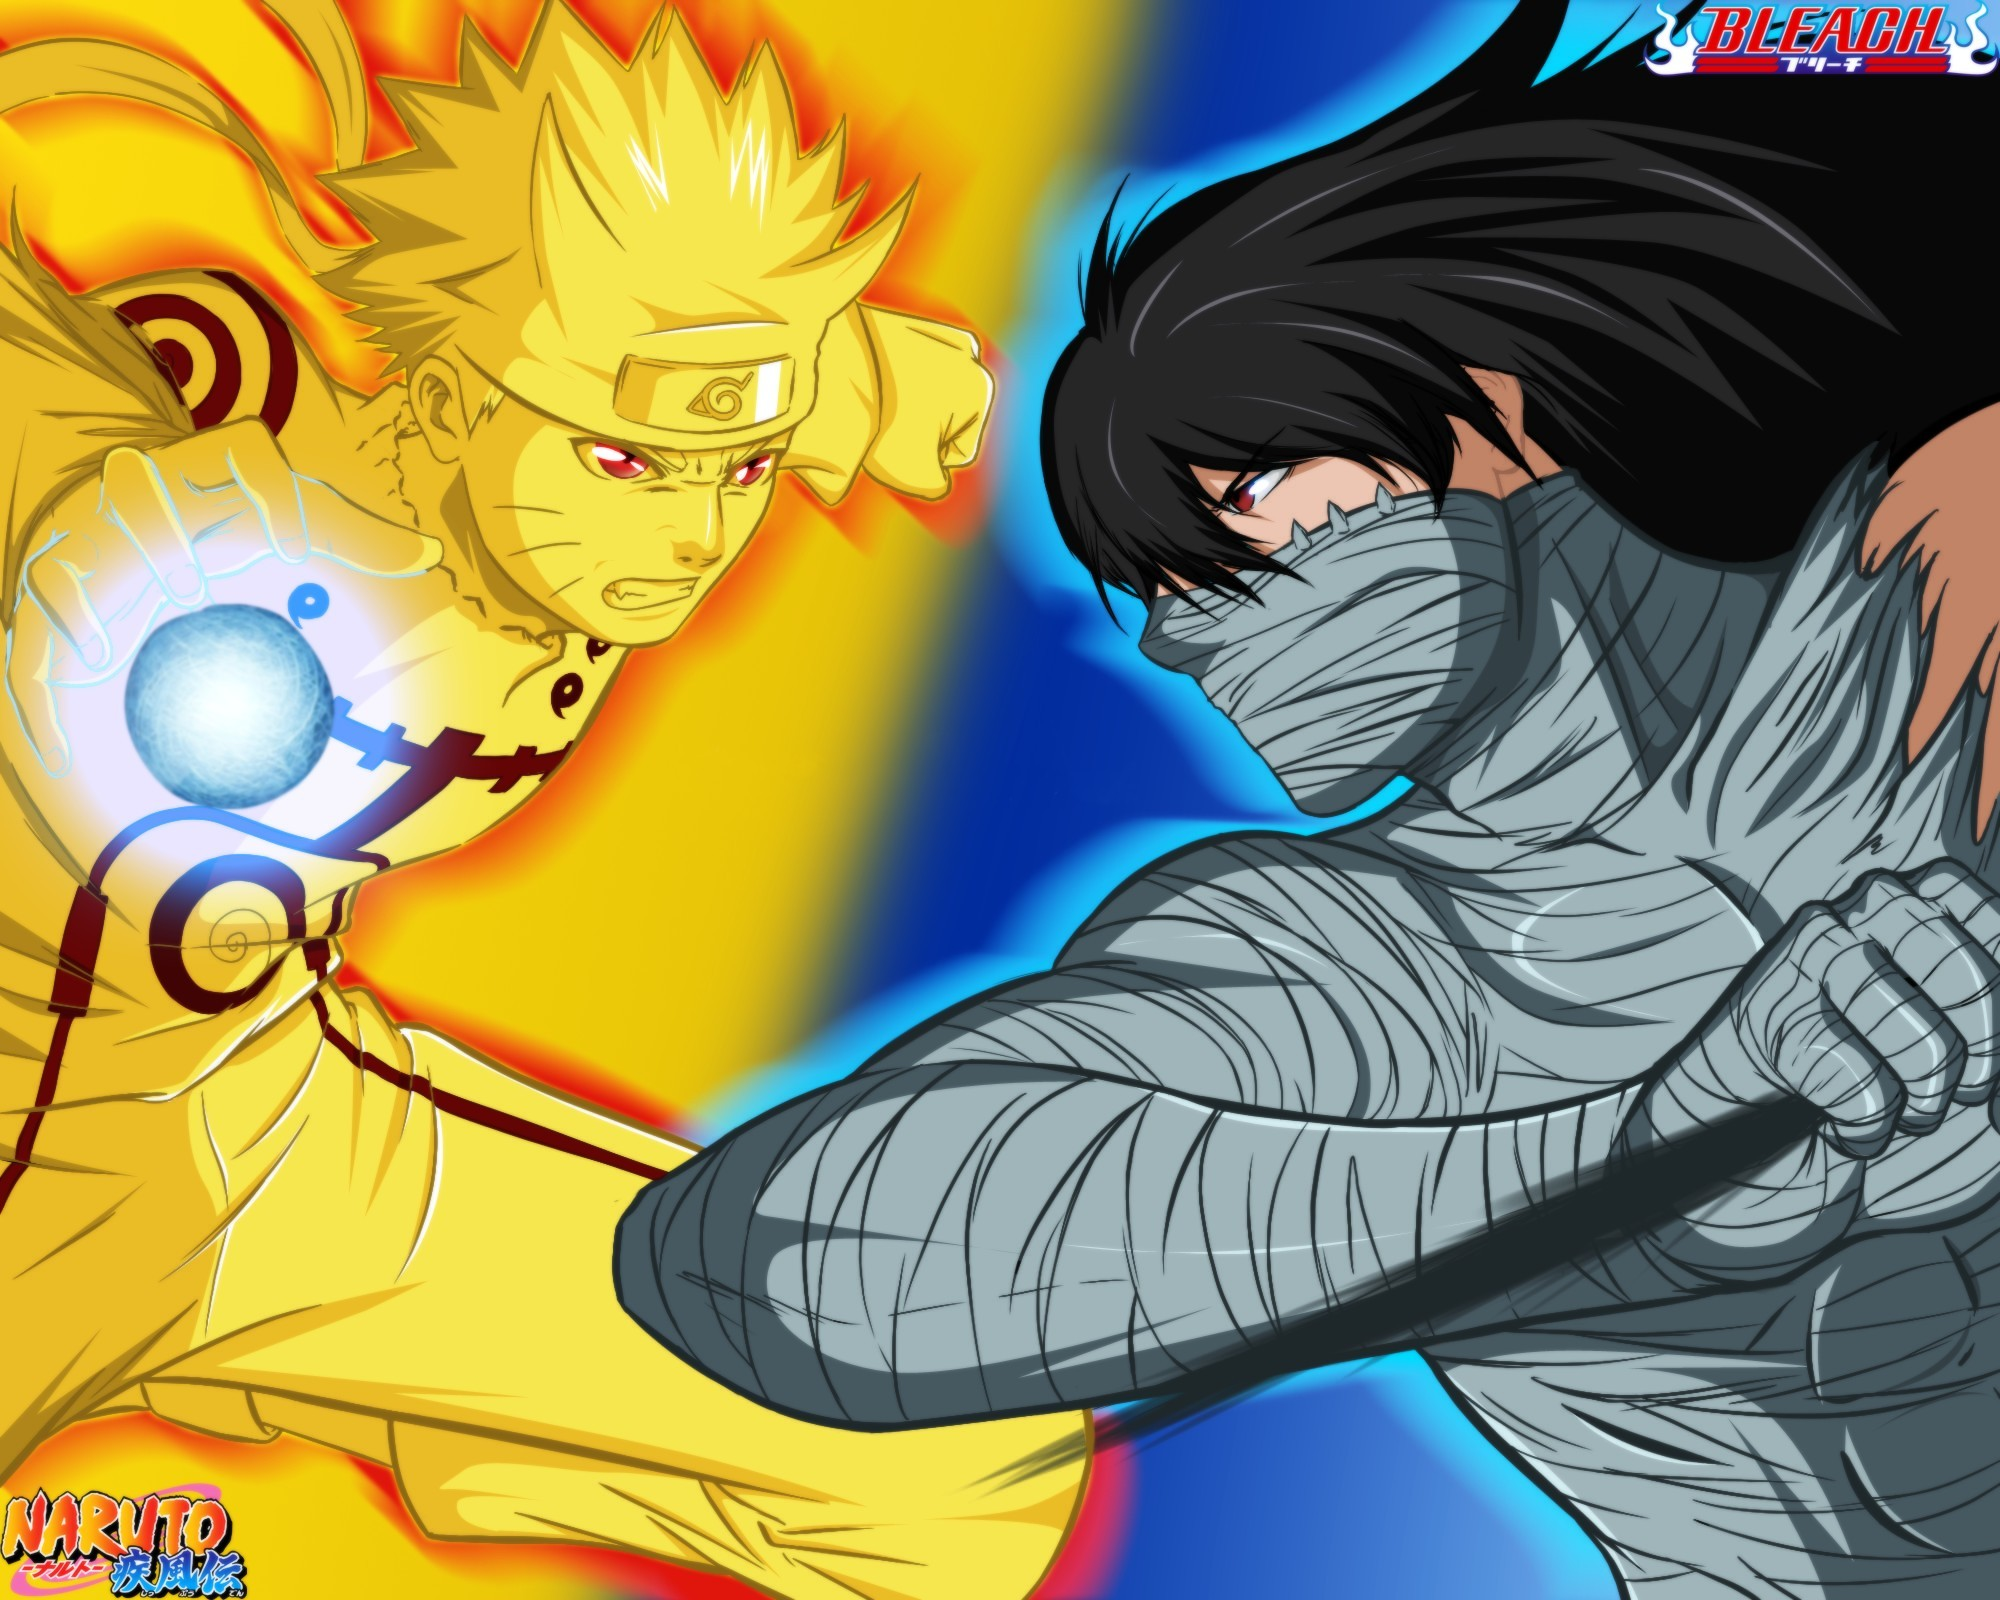 anime, bandage, black hair, bleach, blonde, boy, crossover, fight, final evolution, game, hitayate, ichigo, jutsu, katana, kurosaki, kyuubi mode, logo konohagakure no sato, long hair, man, manga, mu, mugetsu, naruto, naruto shippuden, naruto vs ichigo, power, rasengan, red eyes, shihakushou, shinigami, short hair, special power, stong, substitute, sword, tensa sangetsu, transformation, Uzumaki, vs